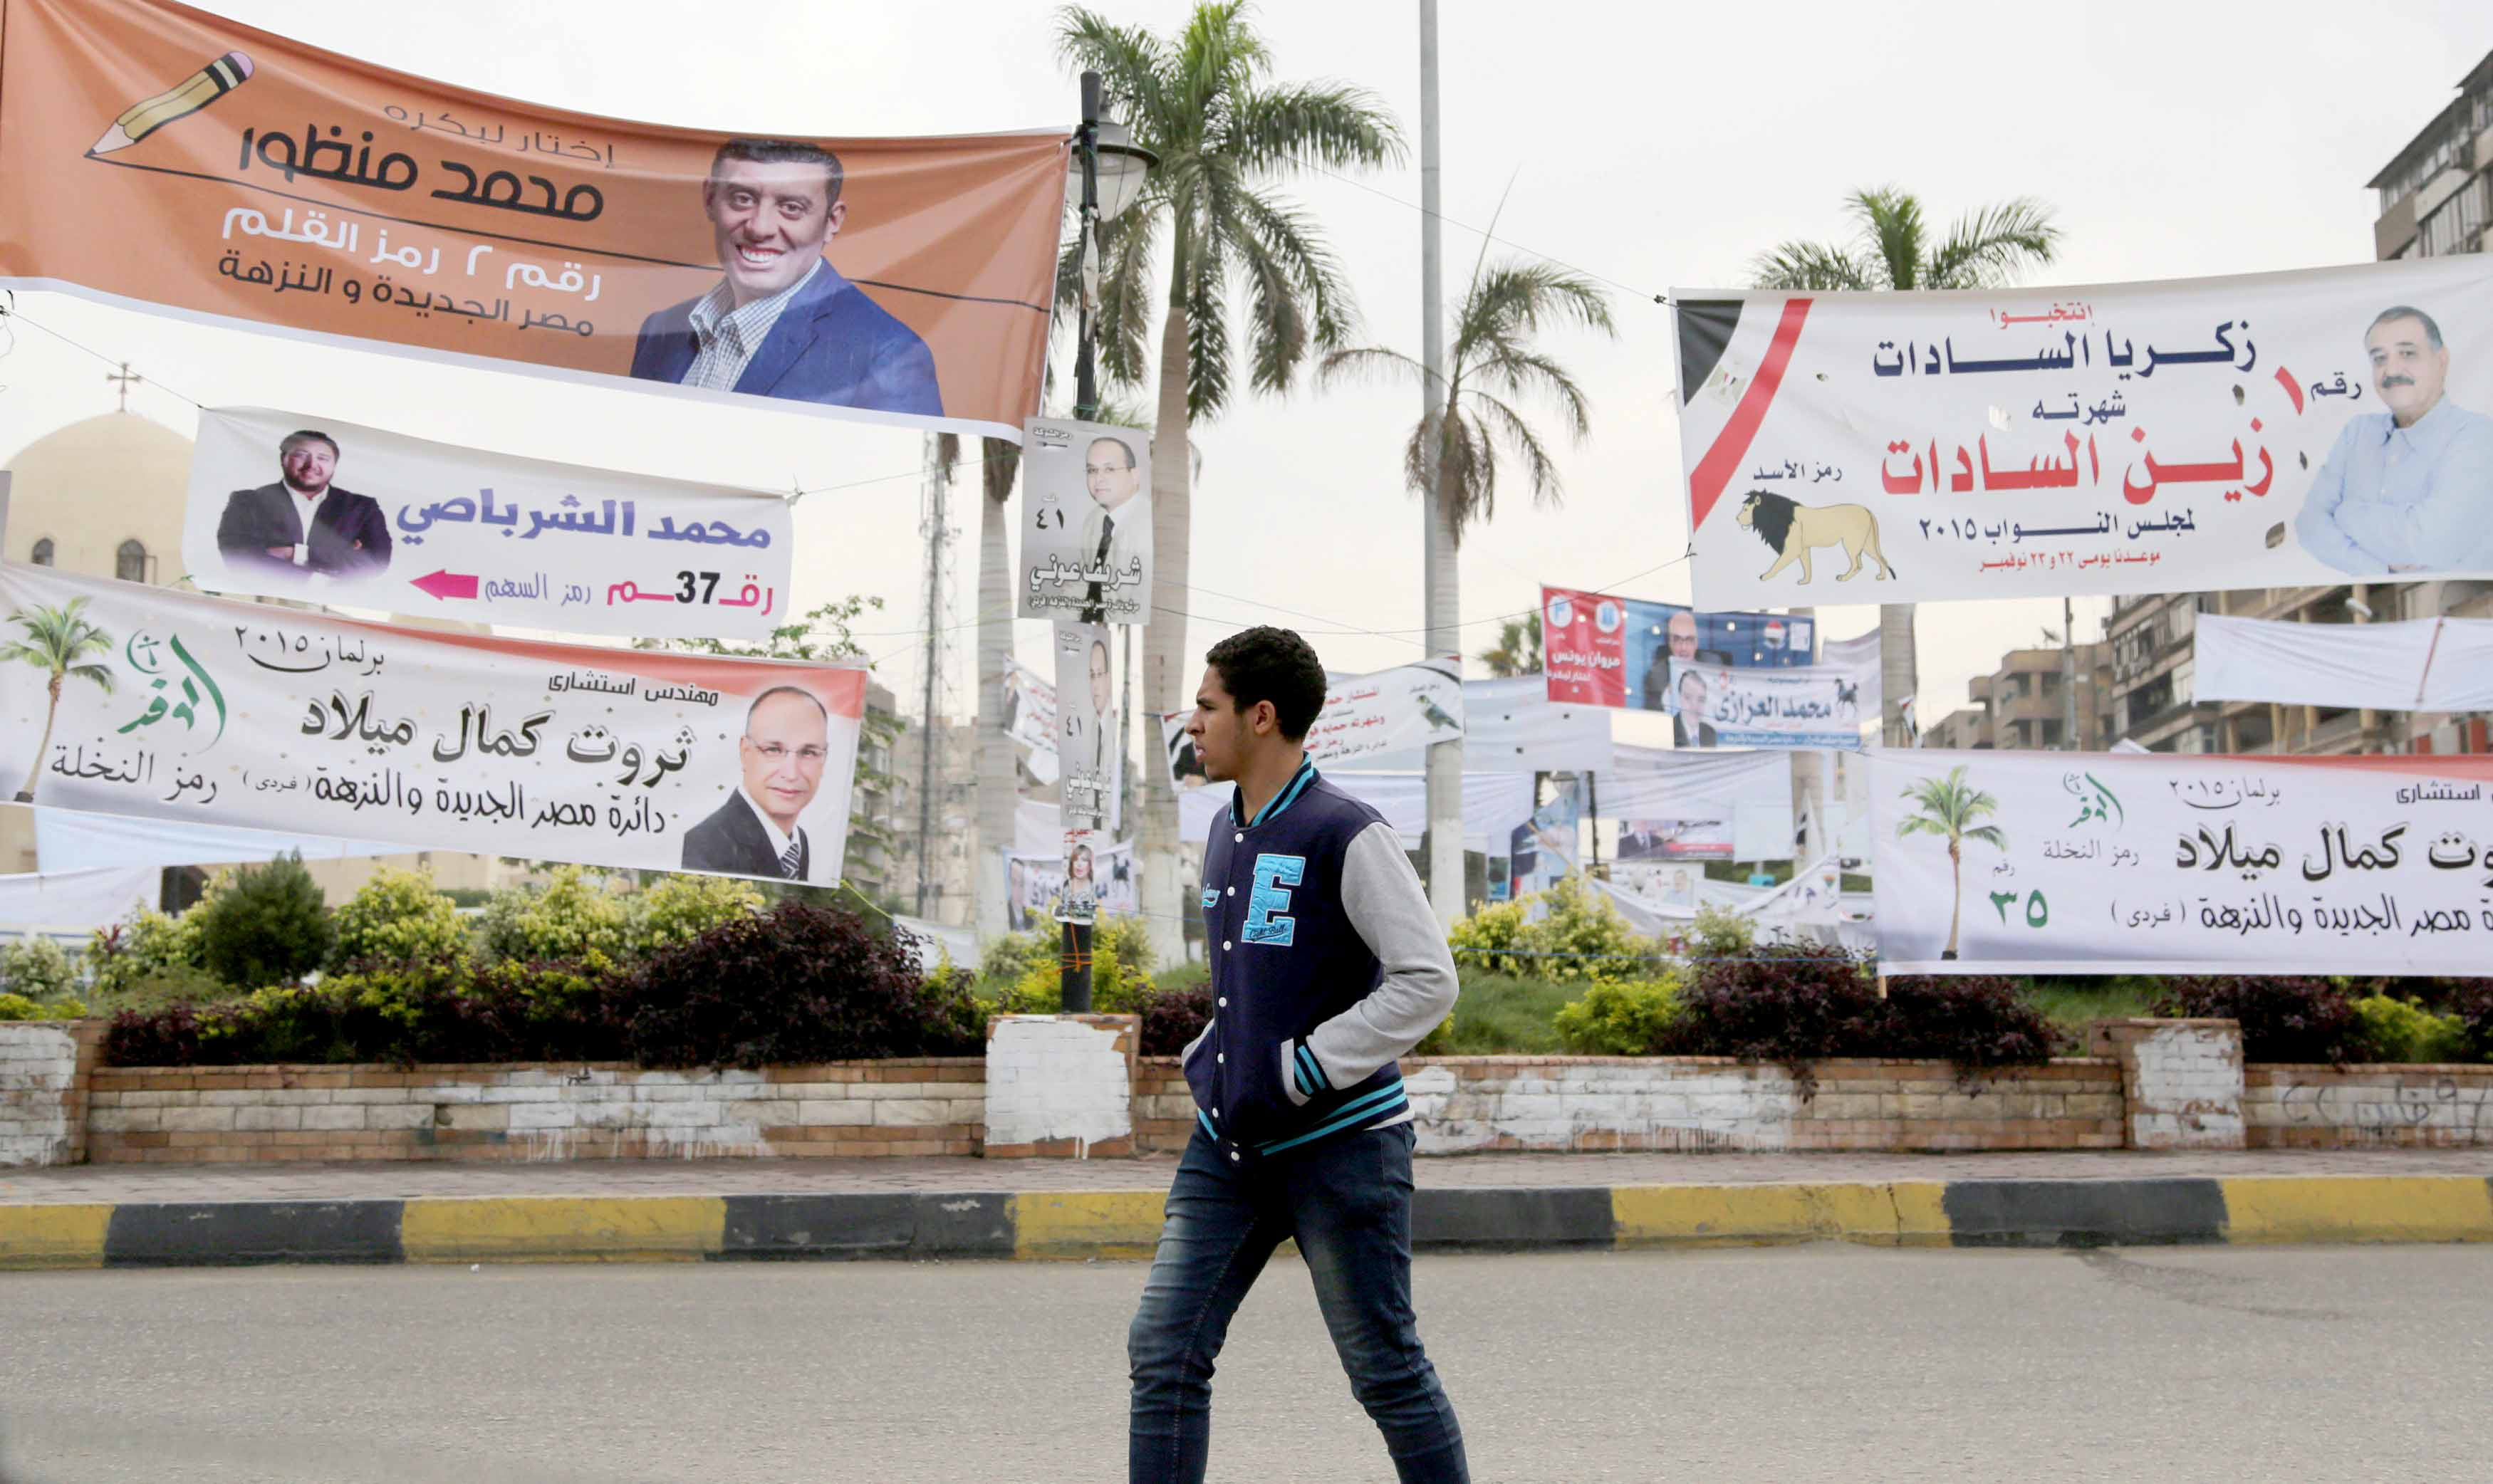 A 2015 file picture shows a young man walking past electoral banners in the Heliopolis area. (Reuters)